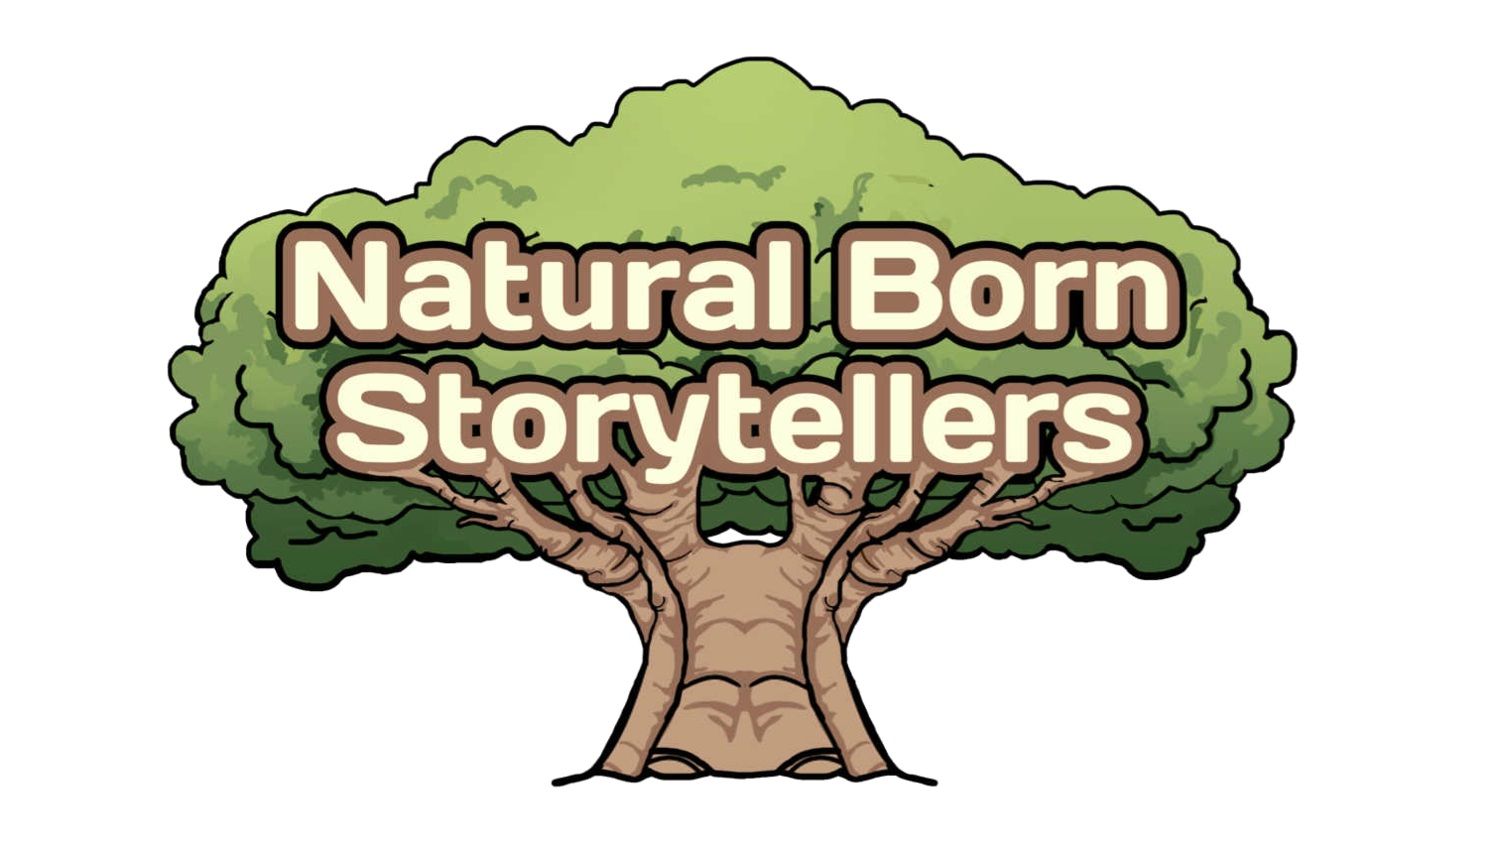 Natural Born Storytellers | A Supportive, Fun & Welcoming Place to Tell True Stories Live | True Storytelling